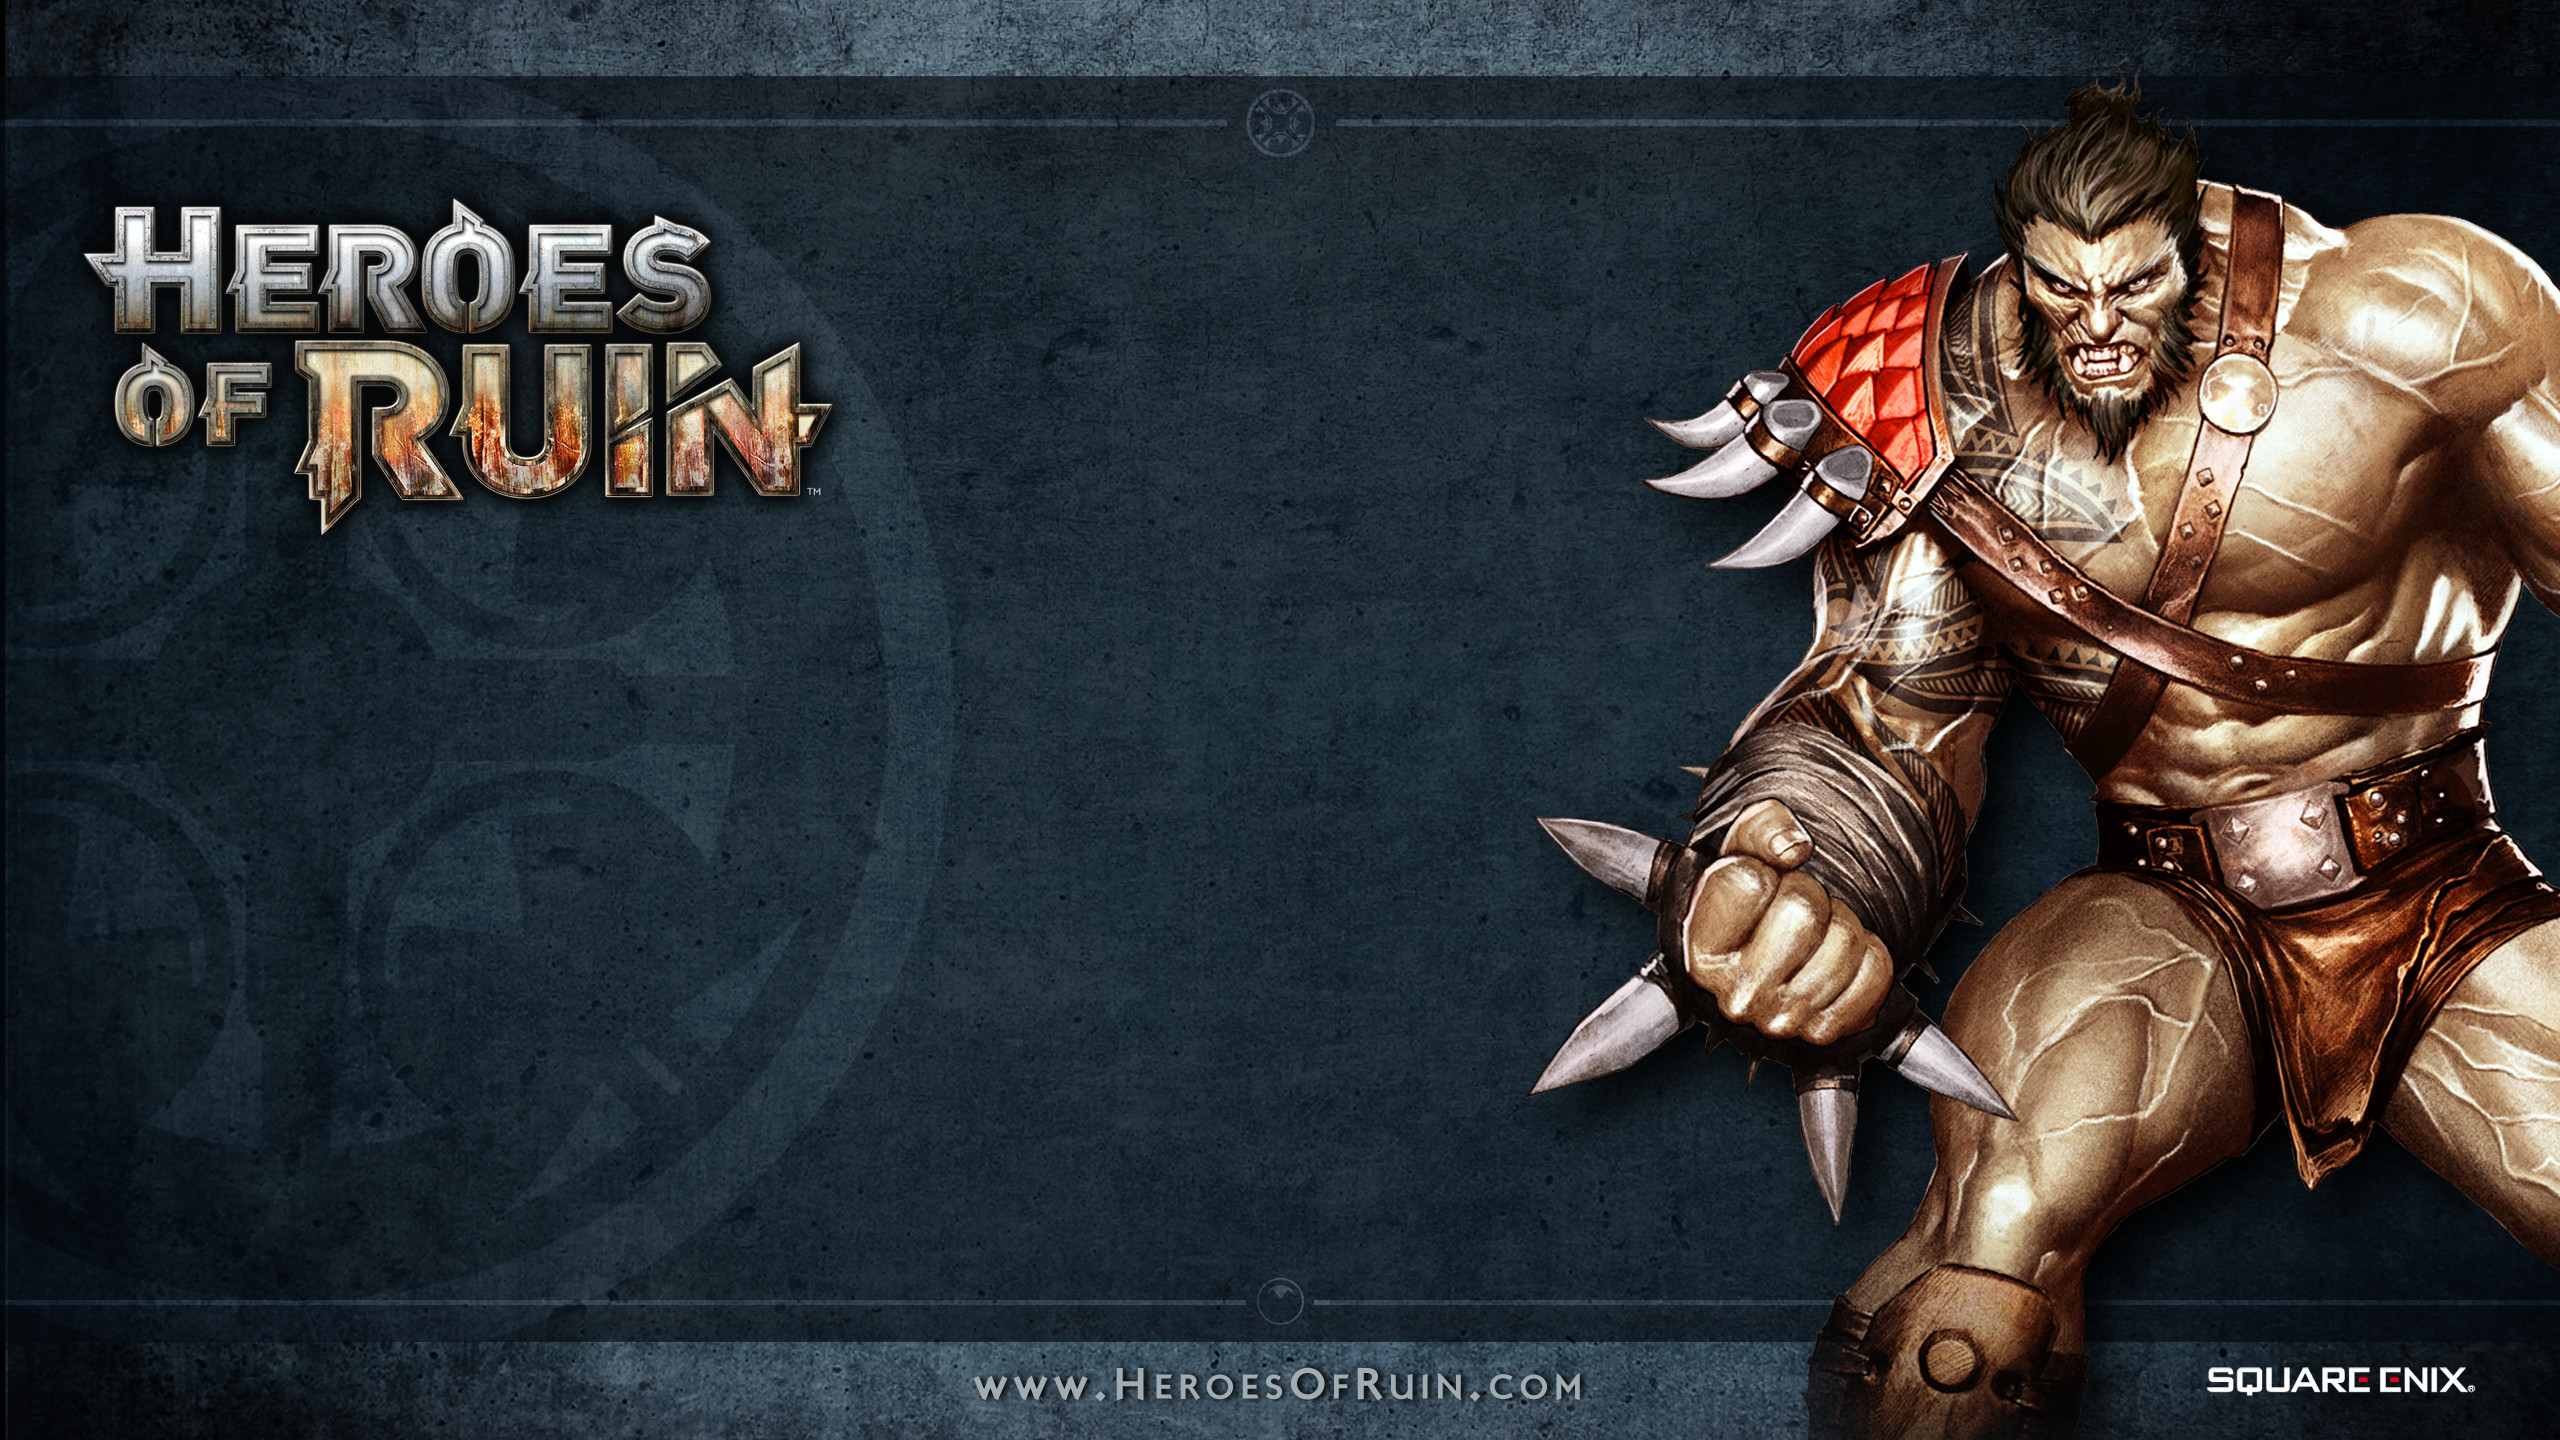 2560x1440 Heroes of Ruin - Savage #1